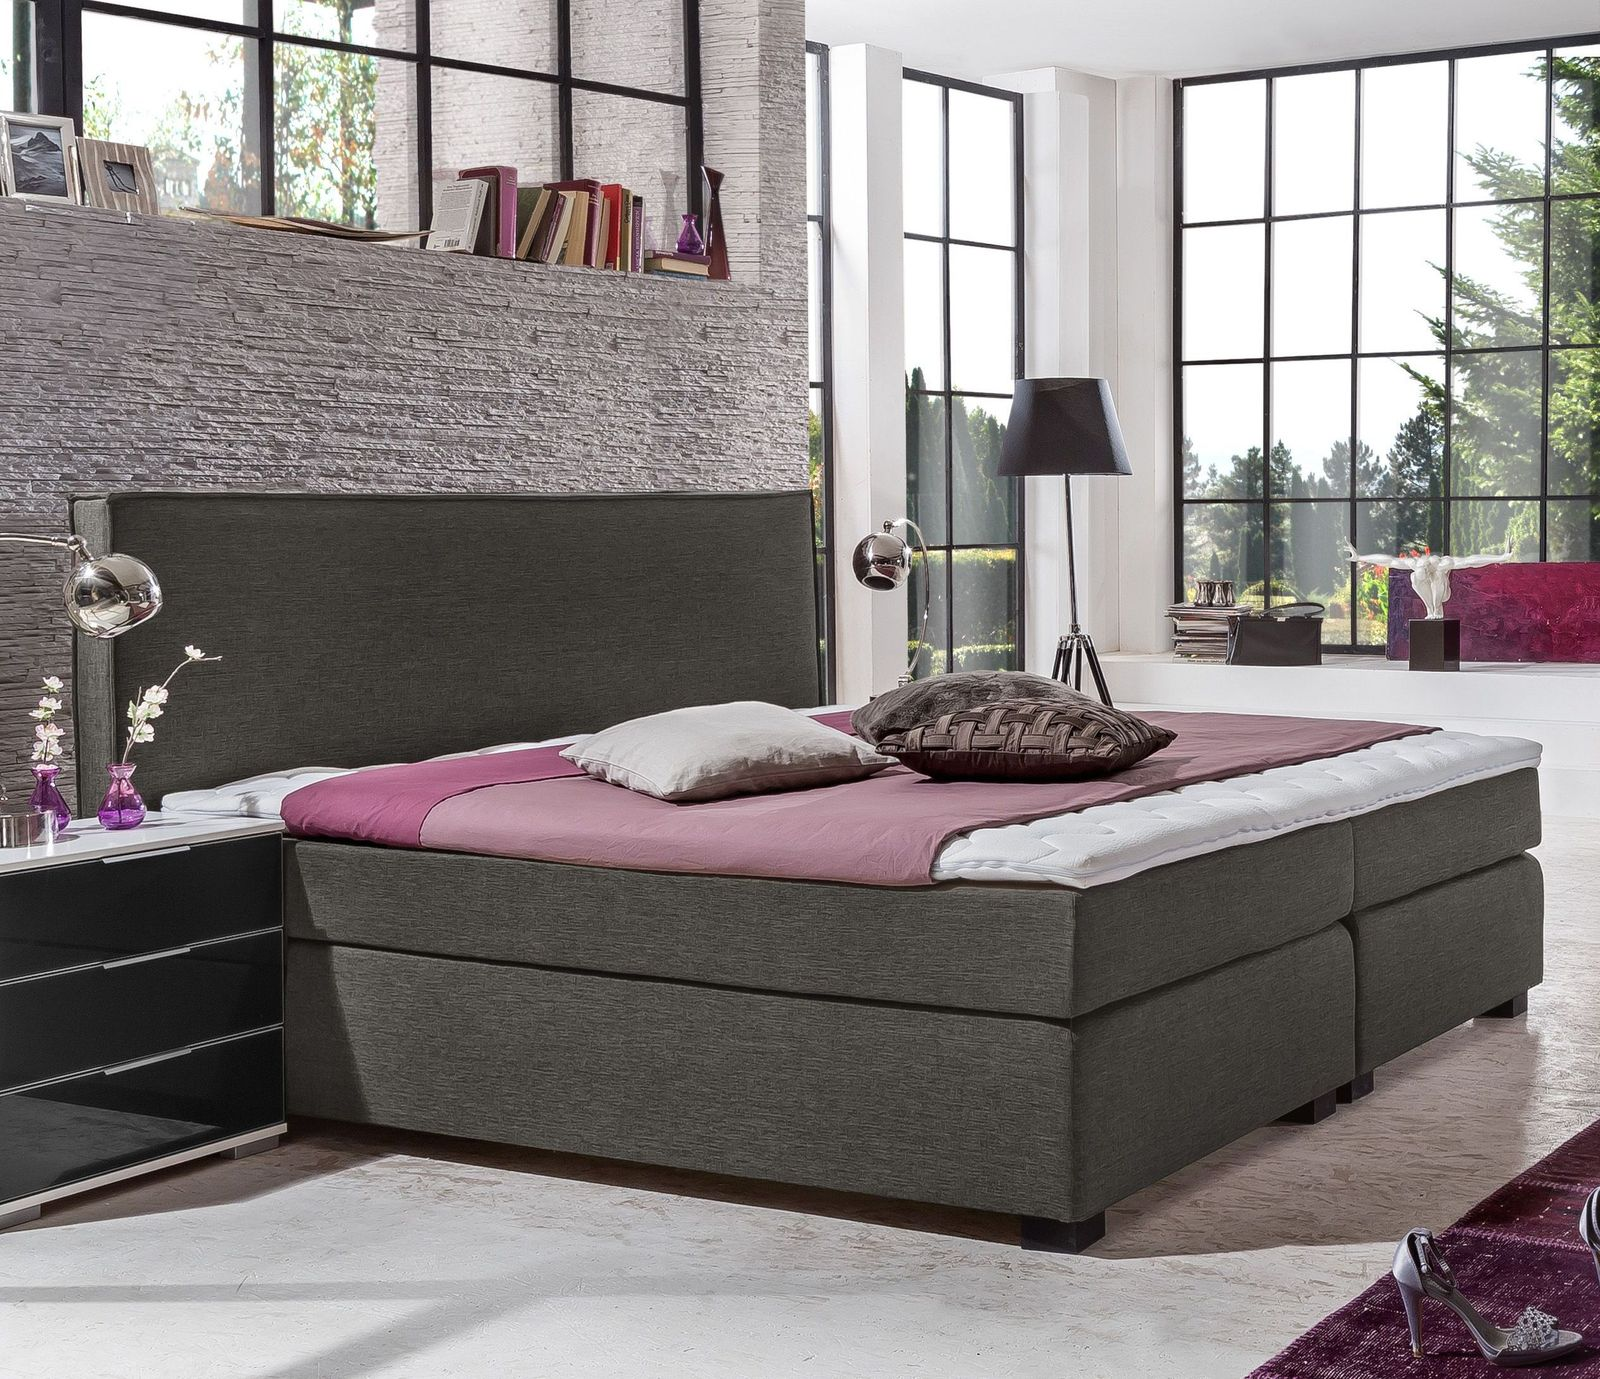 ungew hnlich boxspringbetten polsterbetten unterschiede uberblick fotos die besten wohnideen. Black Bedroom Furniture Sets. Home Design Ideas